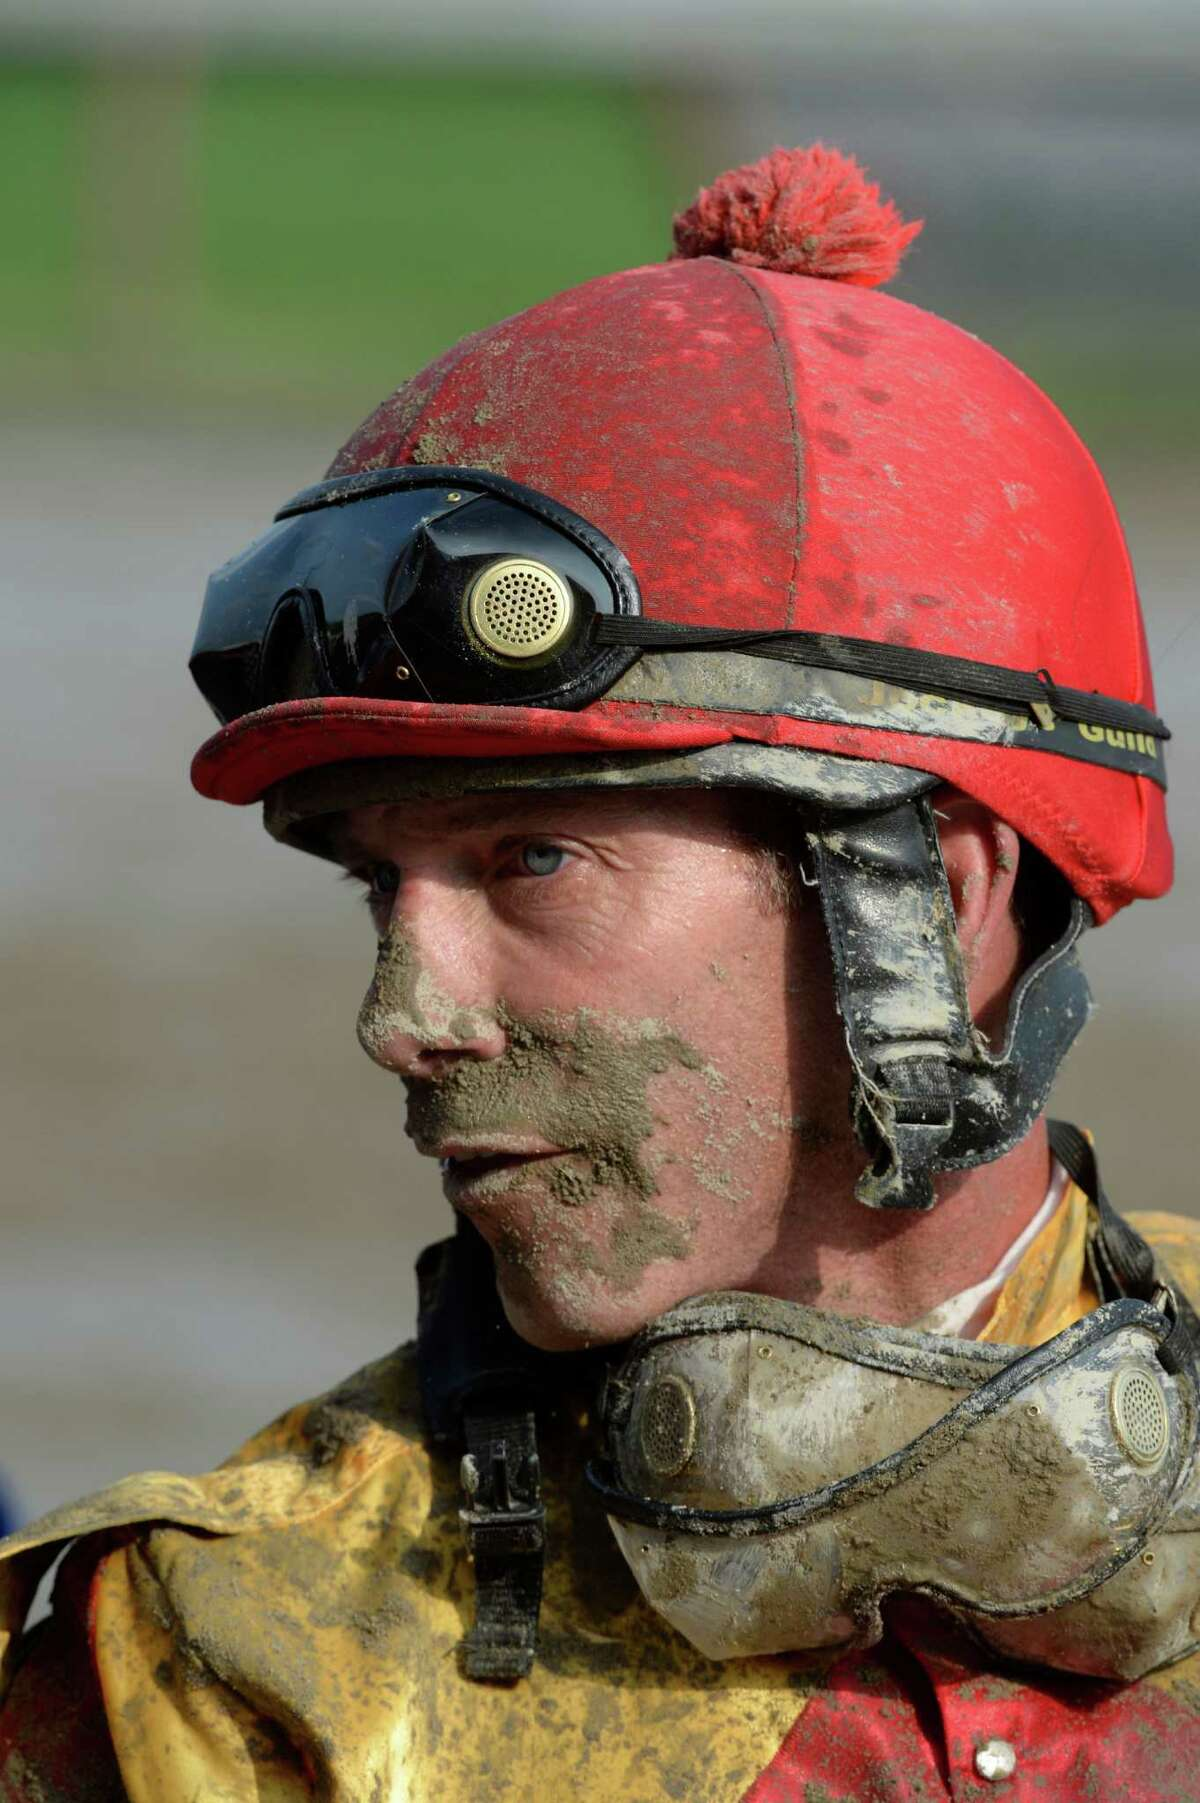 Jockey Mike Luzzi shows the muddy condition of the race track Sept. 1, 2013, at the Saratoga Race Course in Saratoga Springs, N.Y. (Skip Dickstein/Times Union)